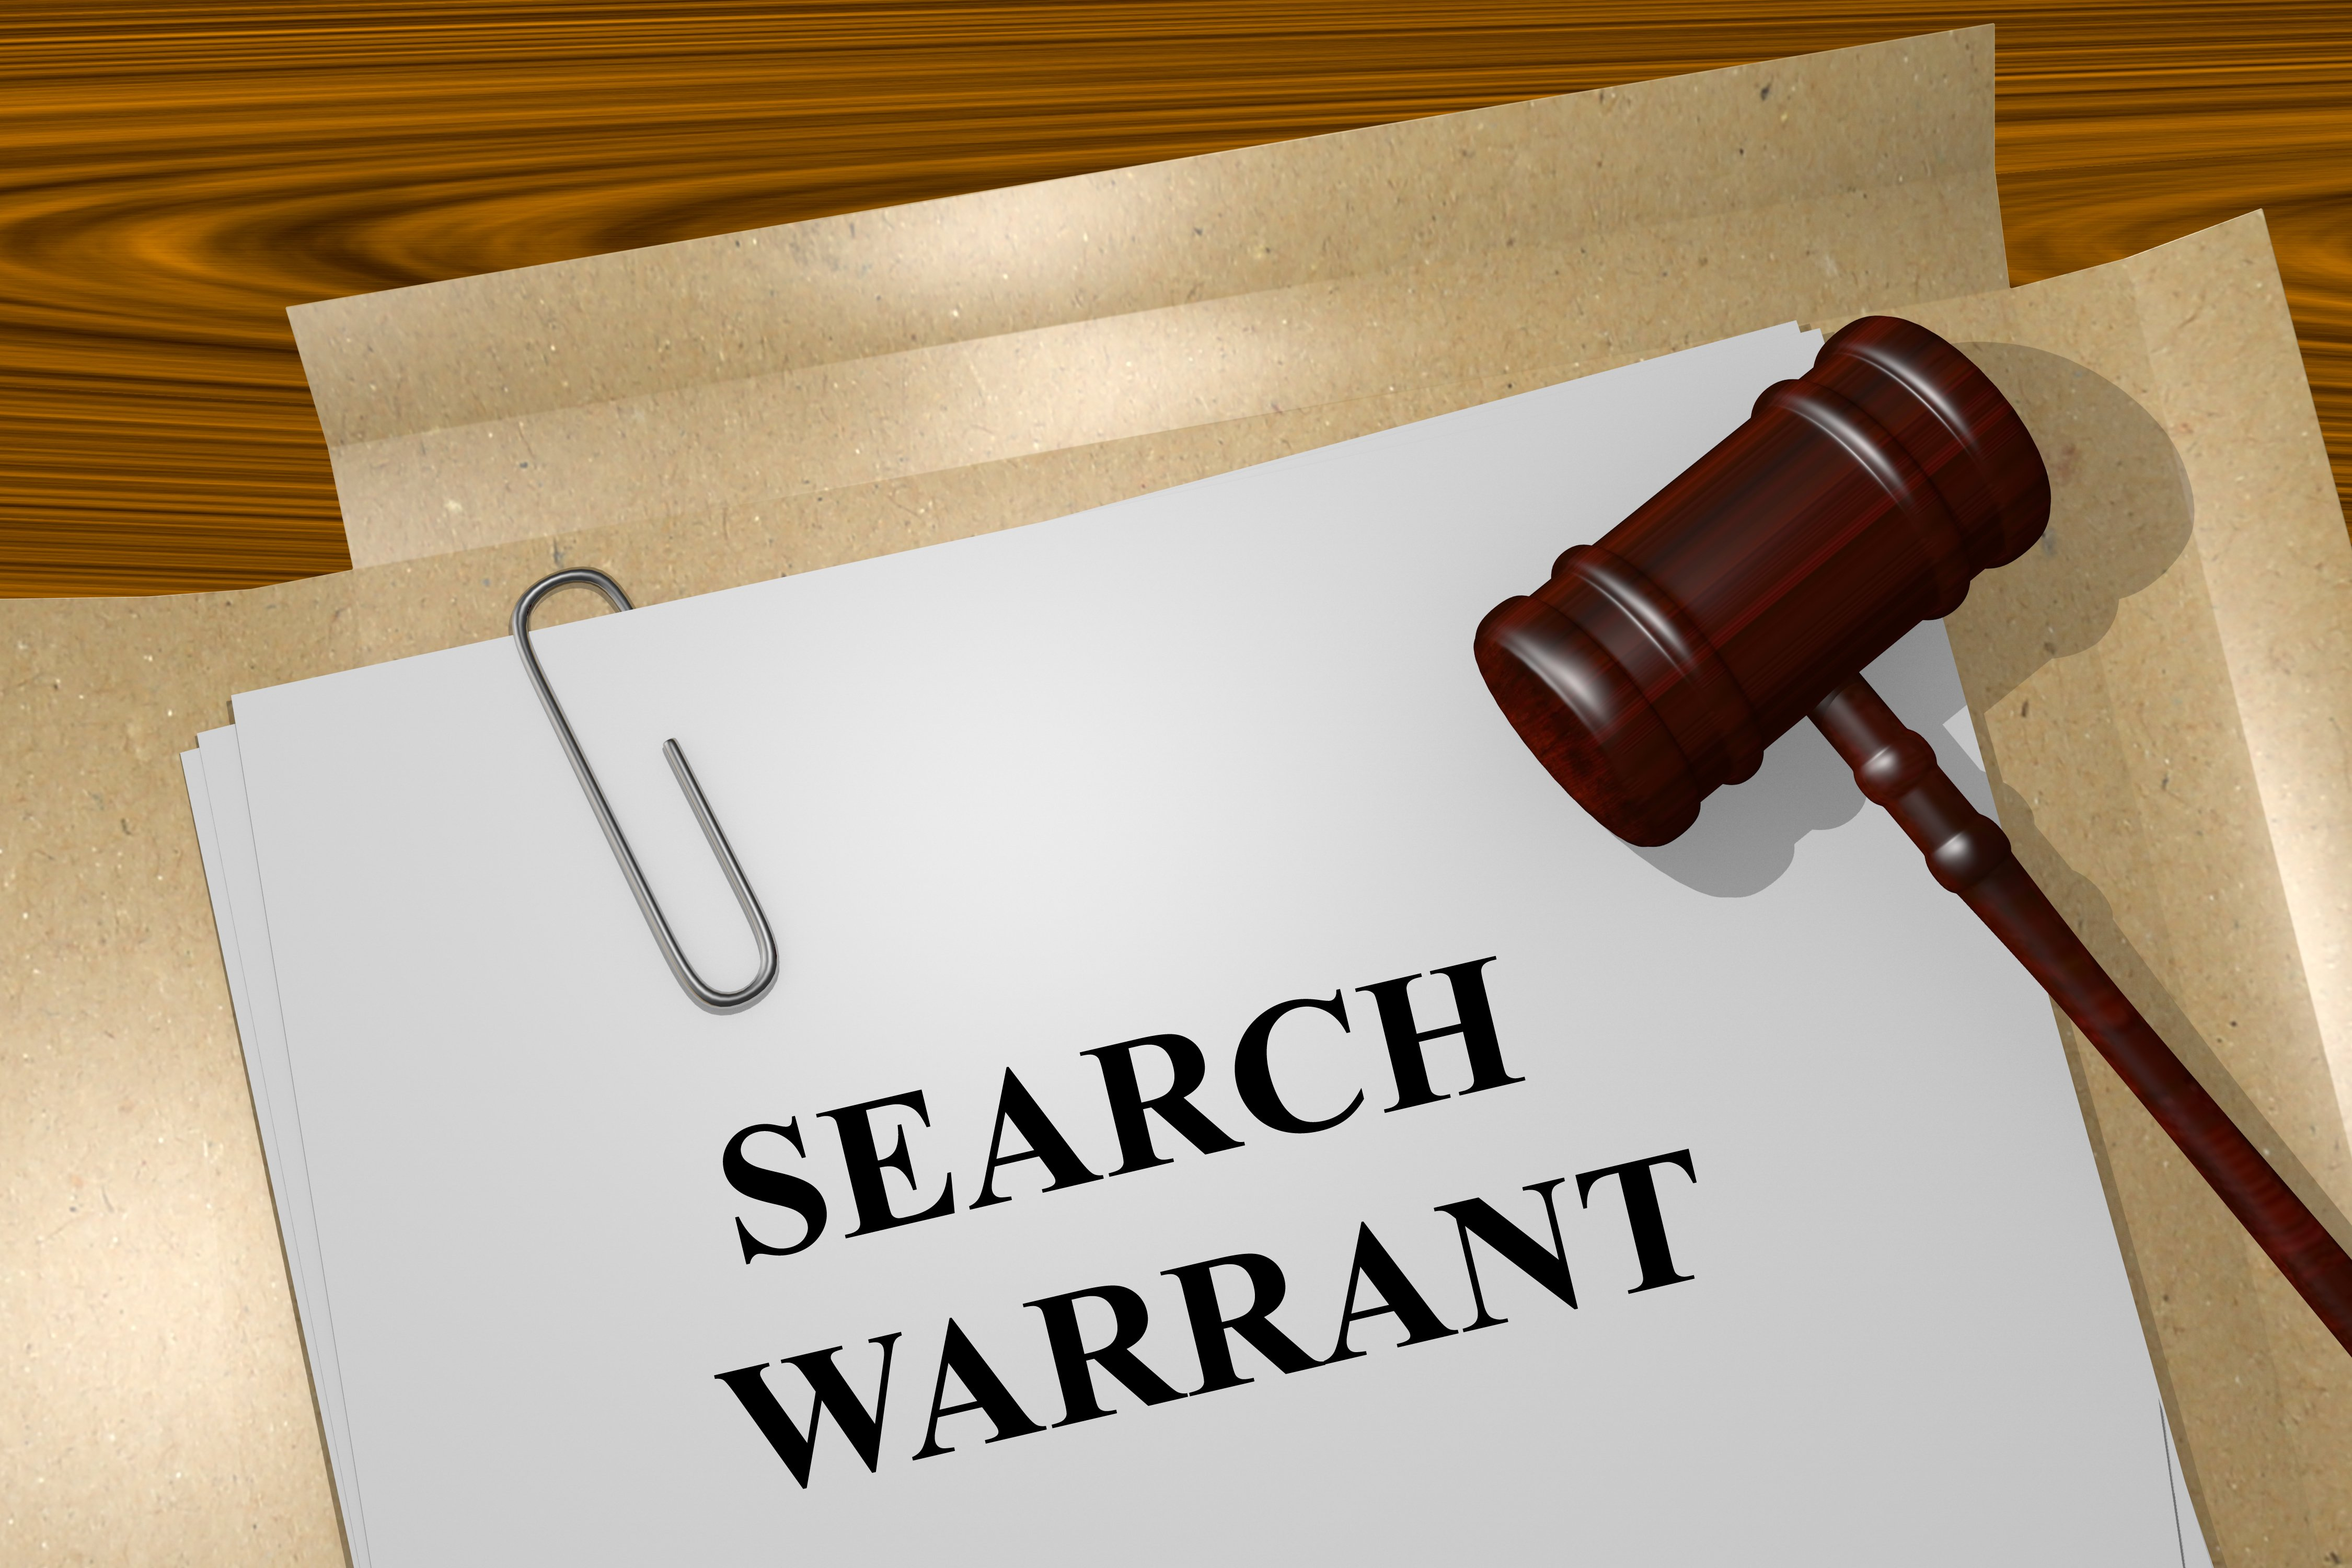 valid searches and seizures without warrants